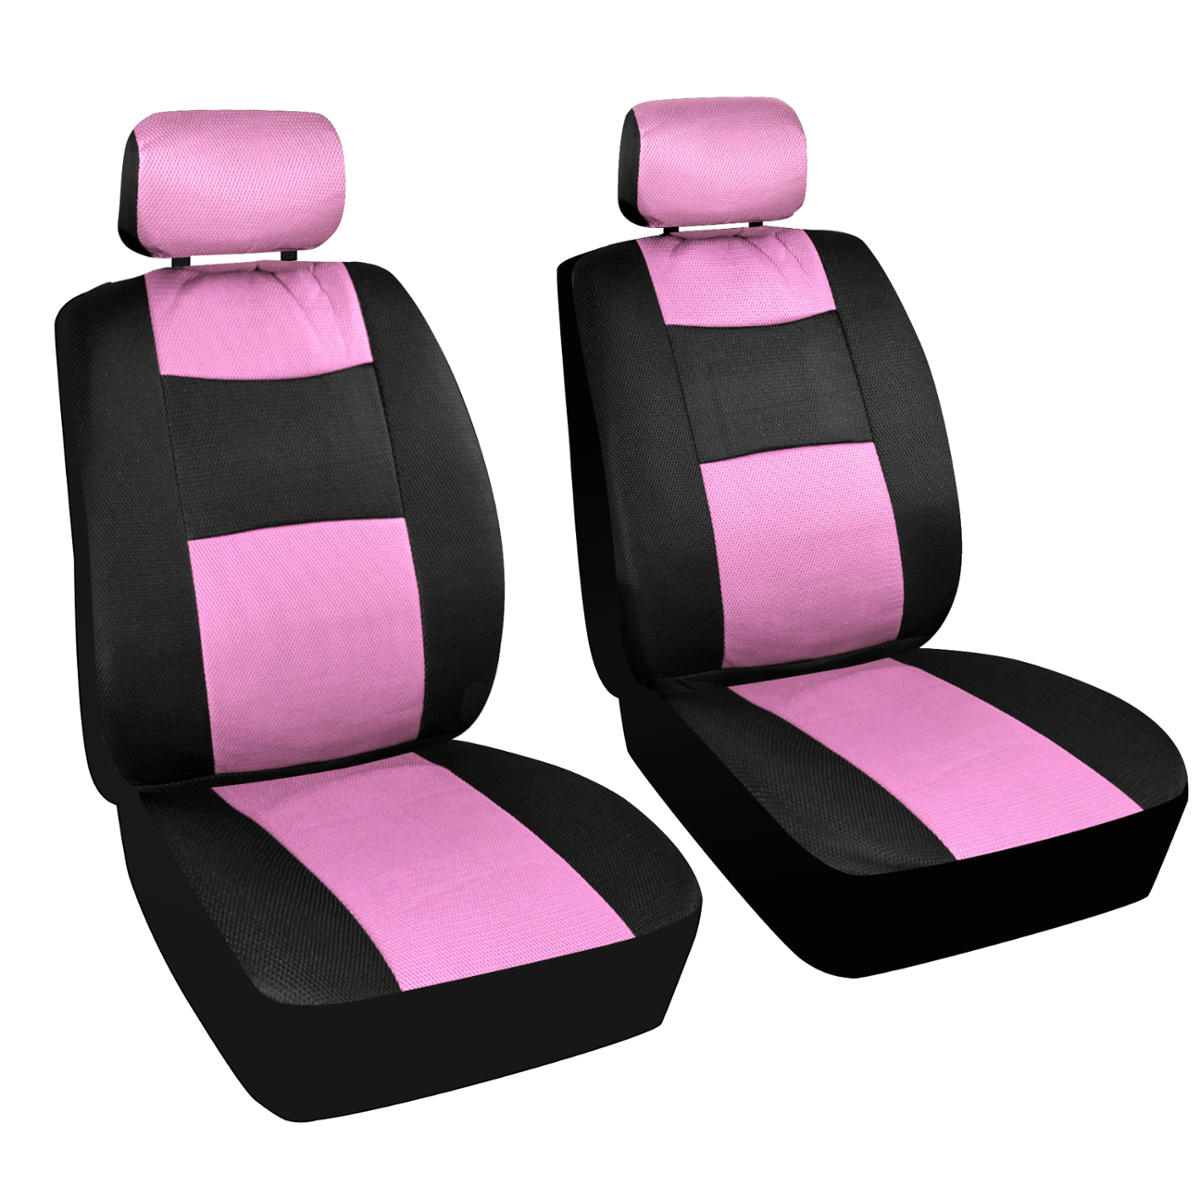 seat covers black and pink mesh cloth polyester 2 color accent set accessories 826942082146 ebay. Black Bedroom Furniture Sets. Home Design Ideas